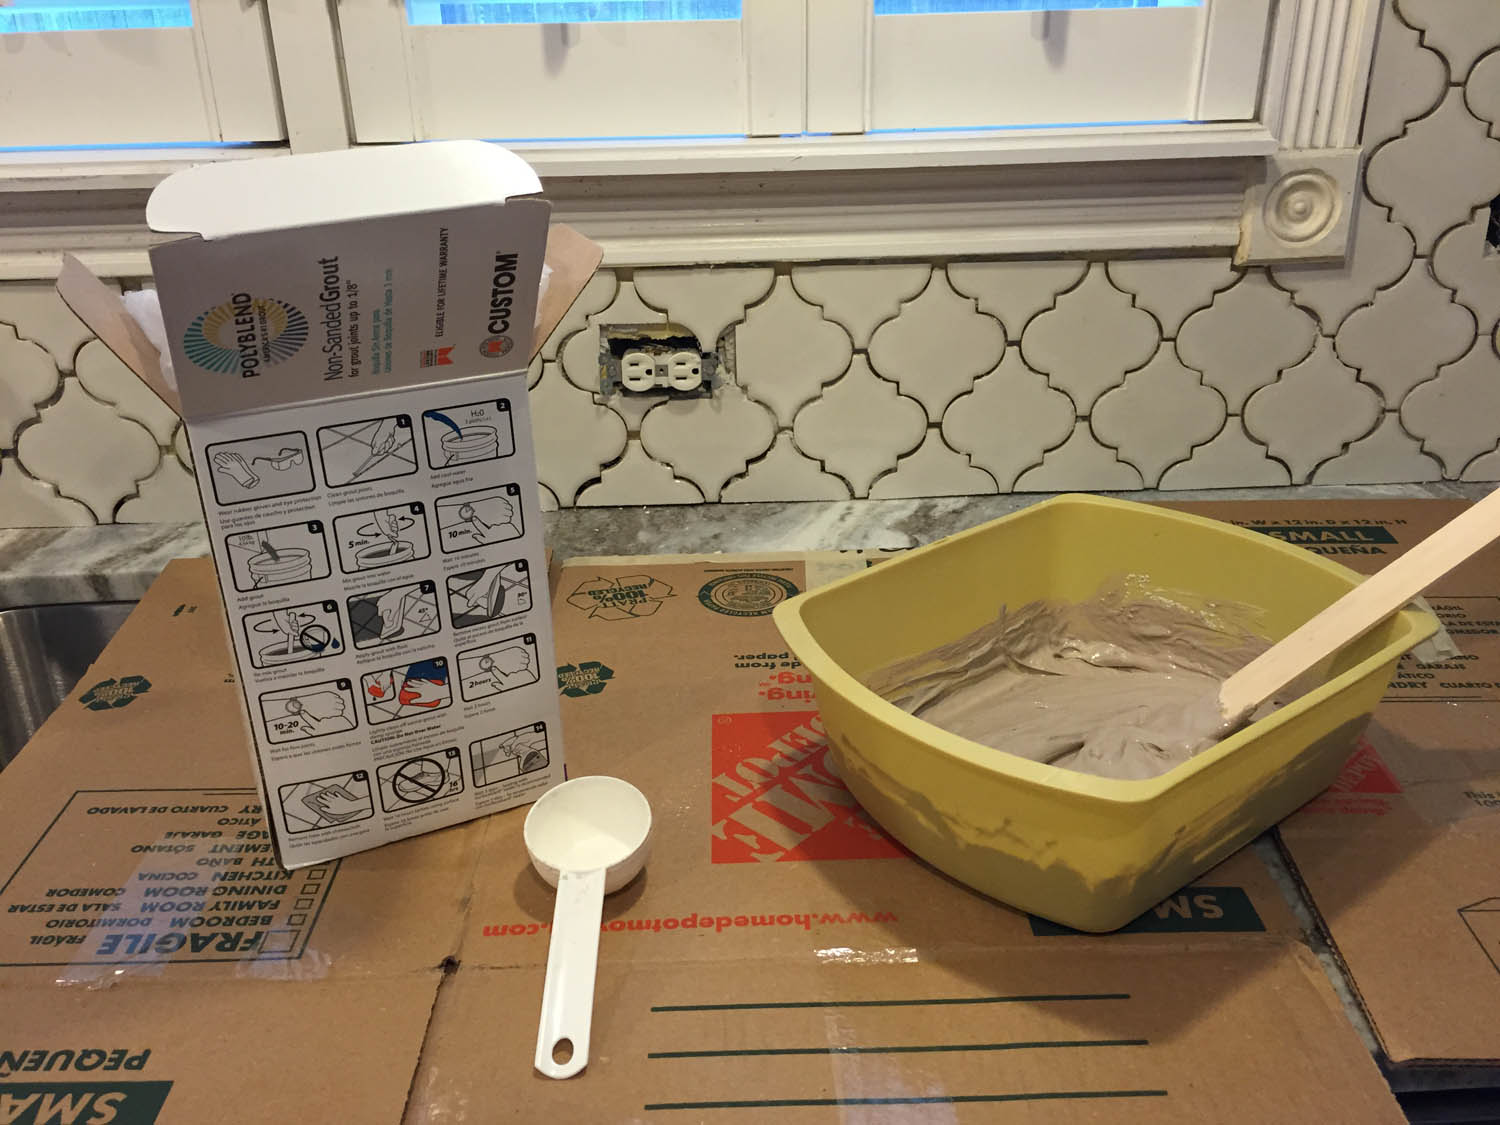 My Saturday project...grout the ogee tile backsplash.